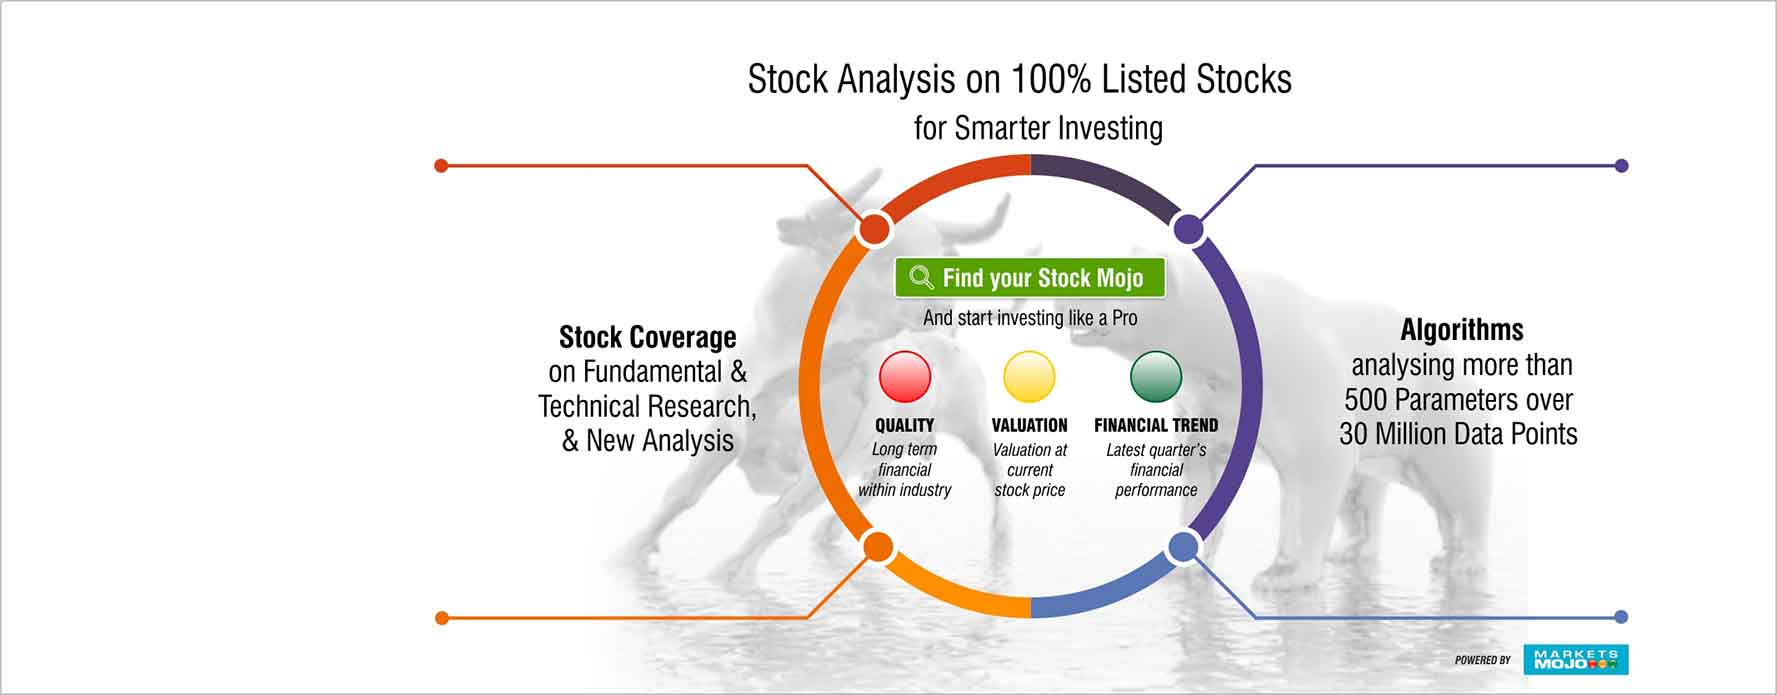 Online Share/Stock Trading, Mutual Funds, Insurance